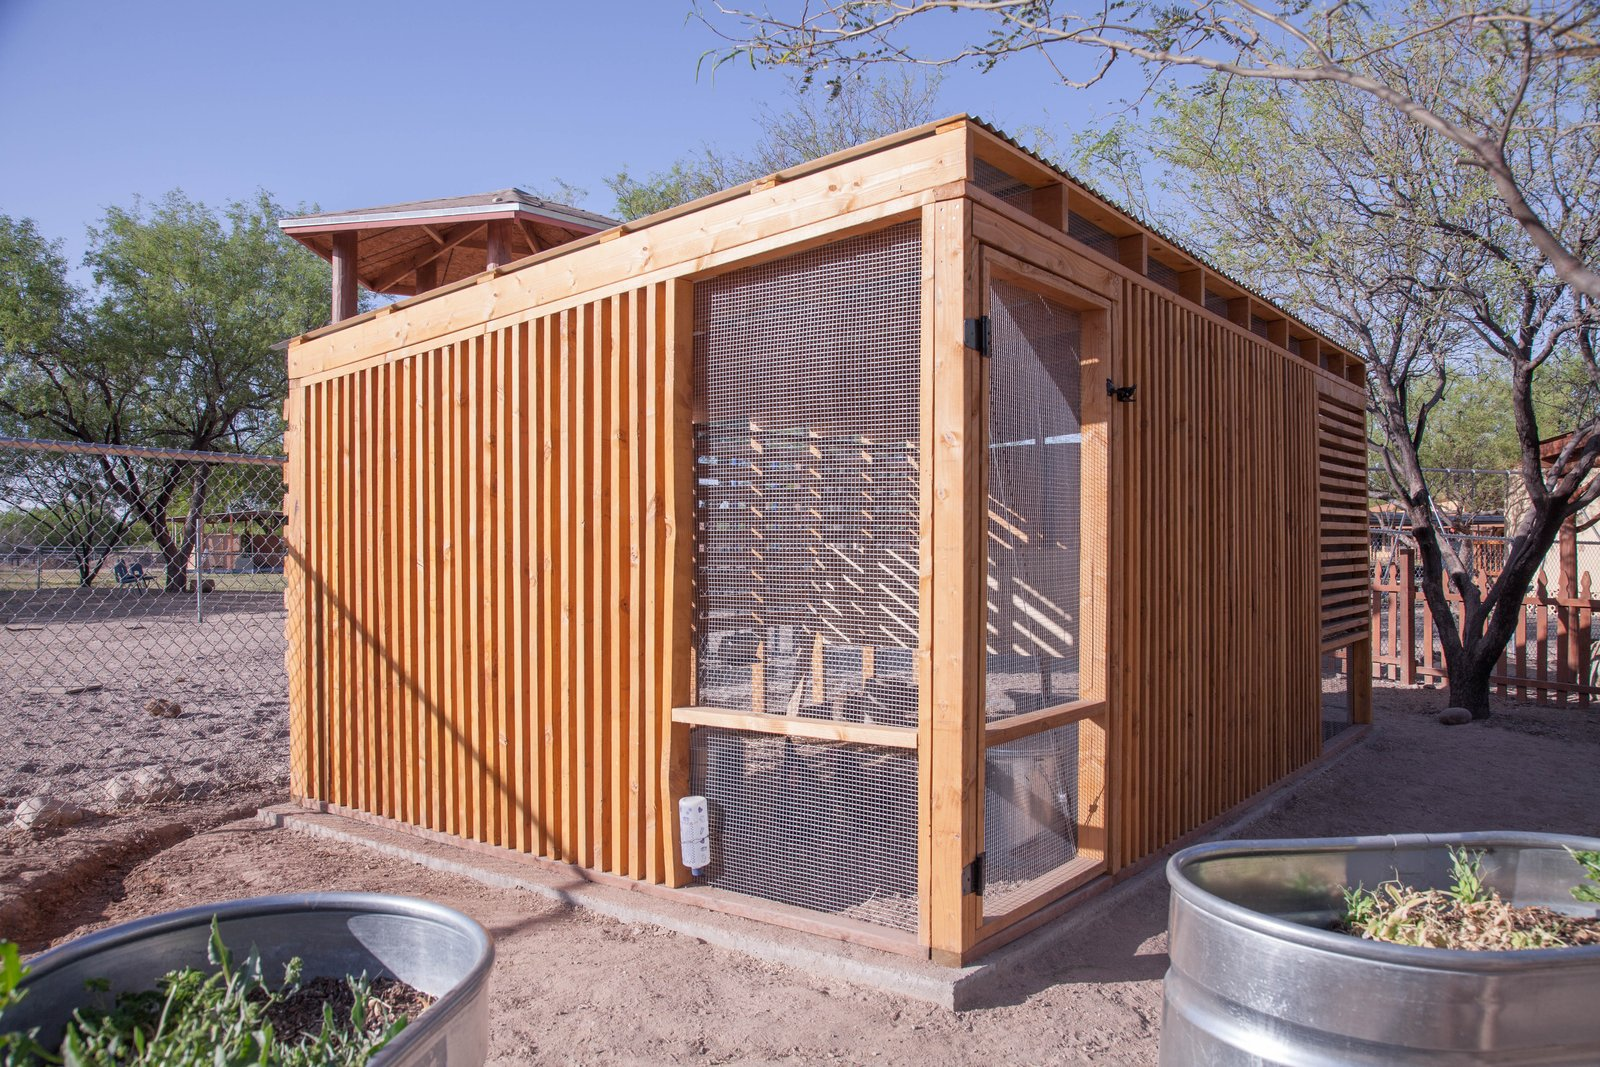 Exterior, Shed, Metal, Flat, and Wood Each facade of the coop is distinct based on orientation to the sun.  Exterior Shed Wood Photos from Budget Breakdown: An Architect Builds a New Chicken Coop For Less Than $1.5K